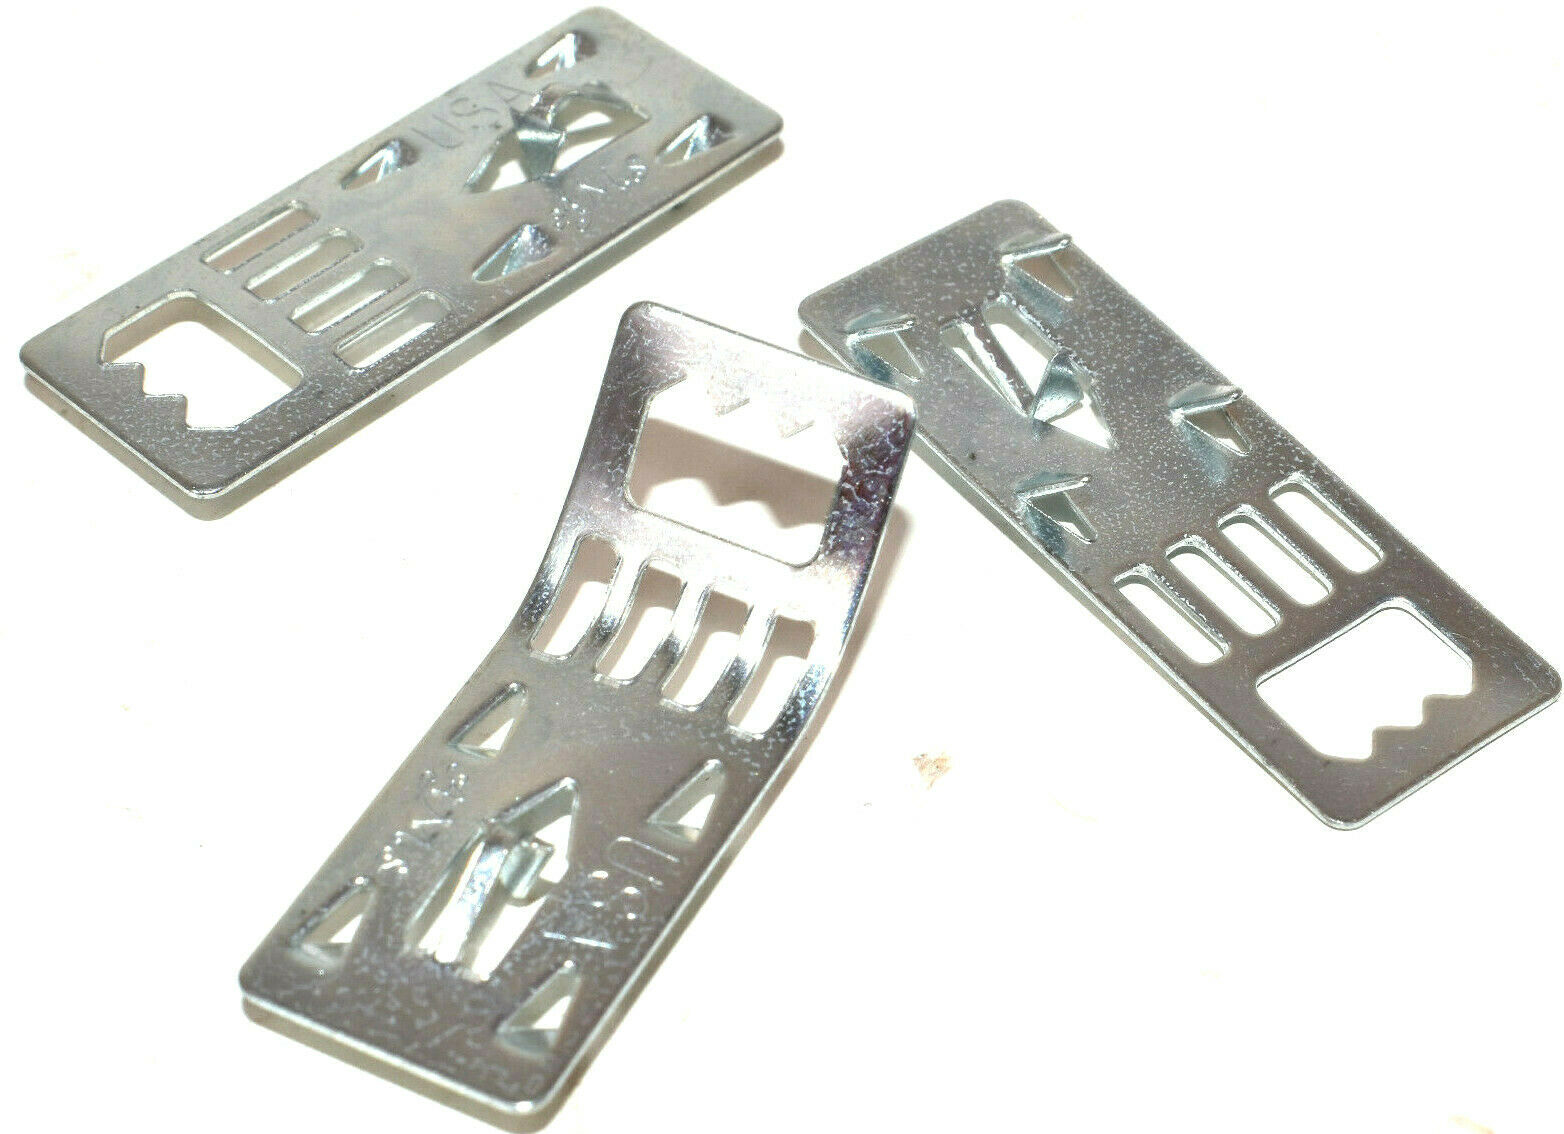 5mm BOARDS PHOTOGRAPHIC HANGER PICTURE TYPE B 40mm FOAM CORE BOARD HANGERS